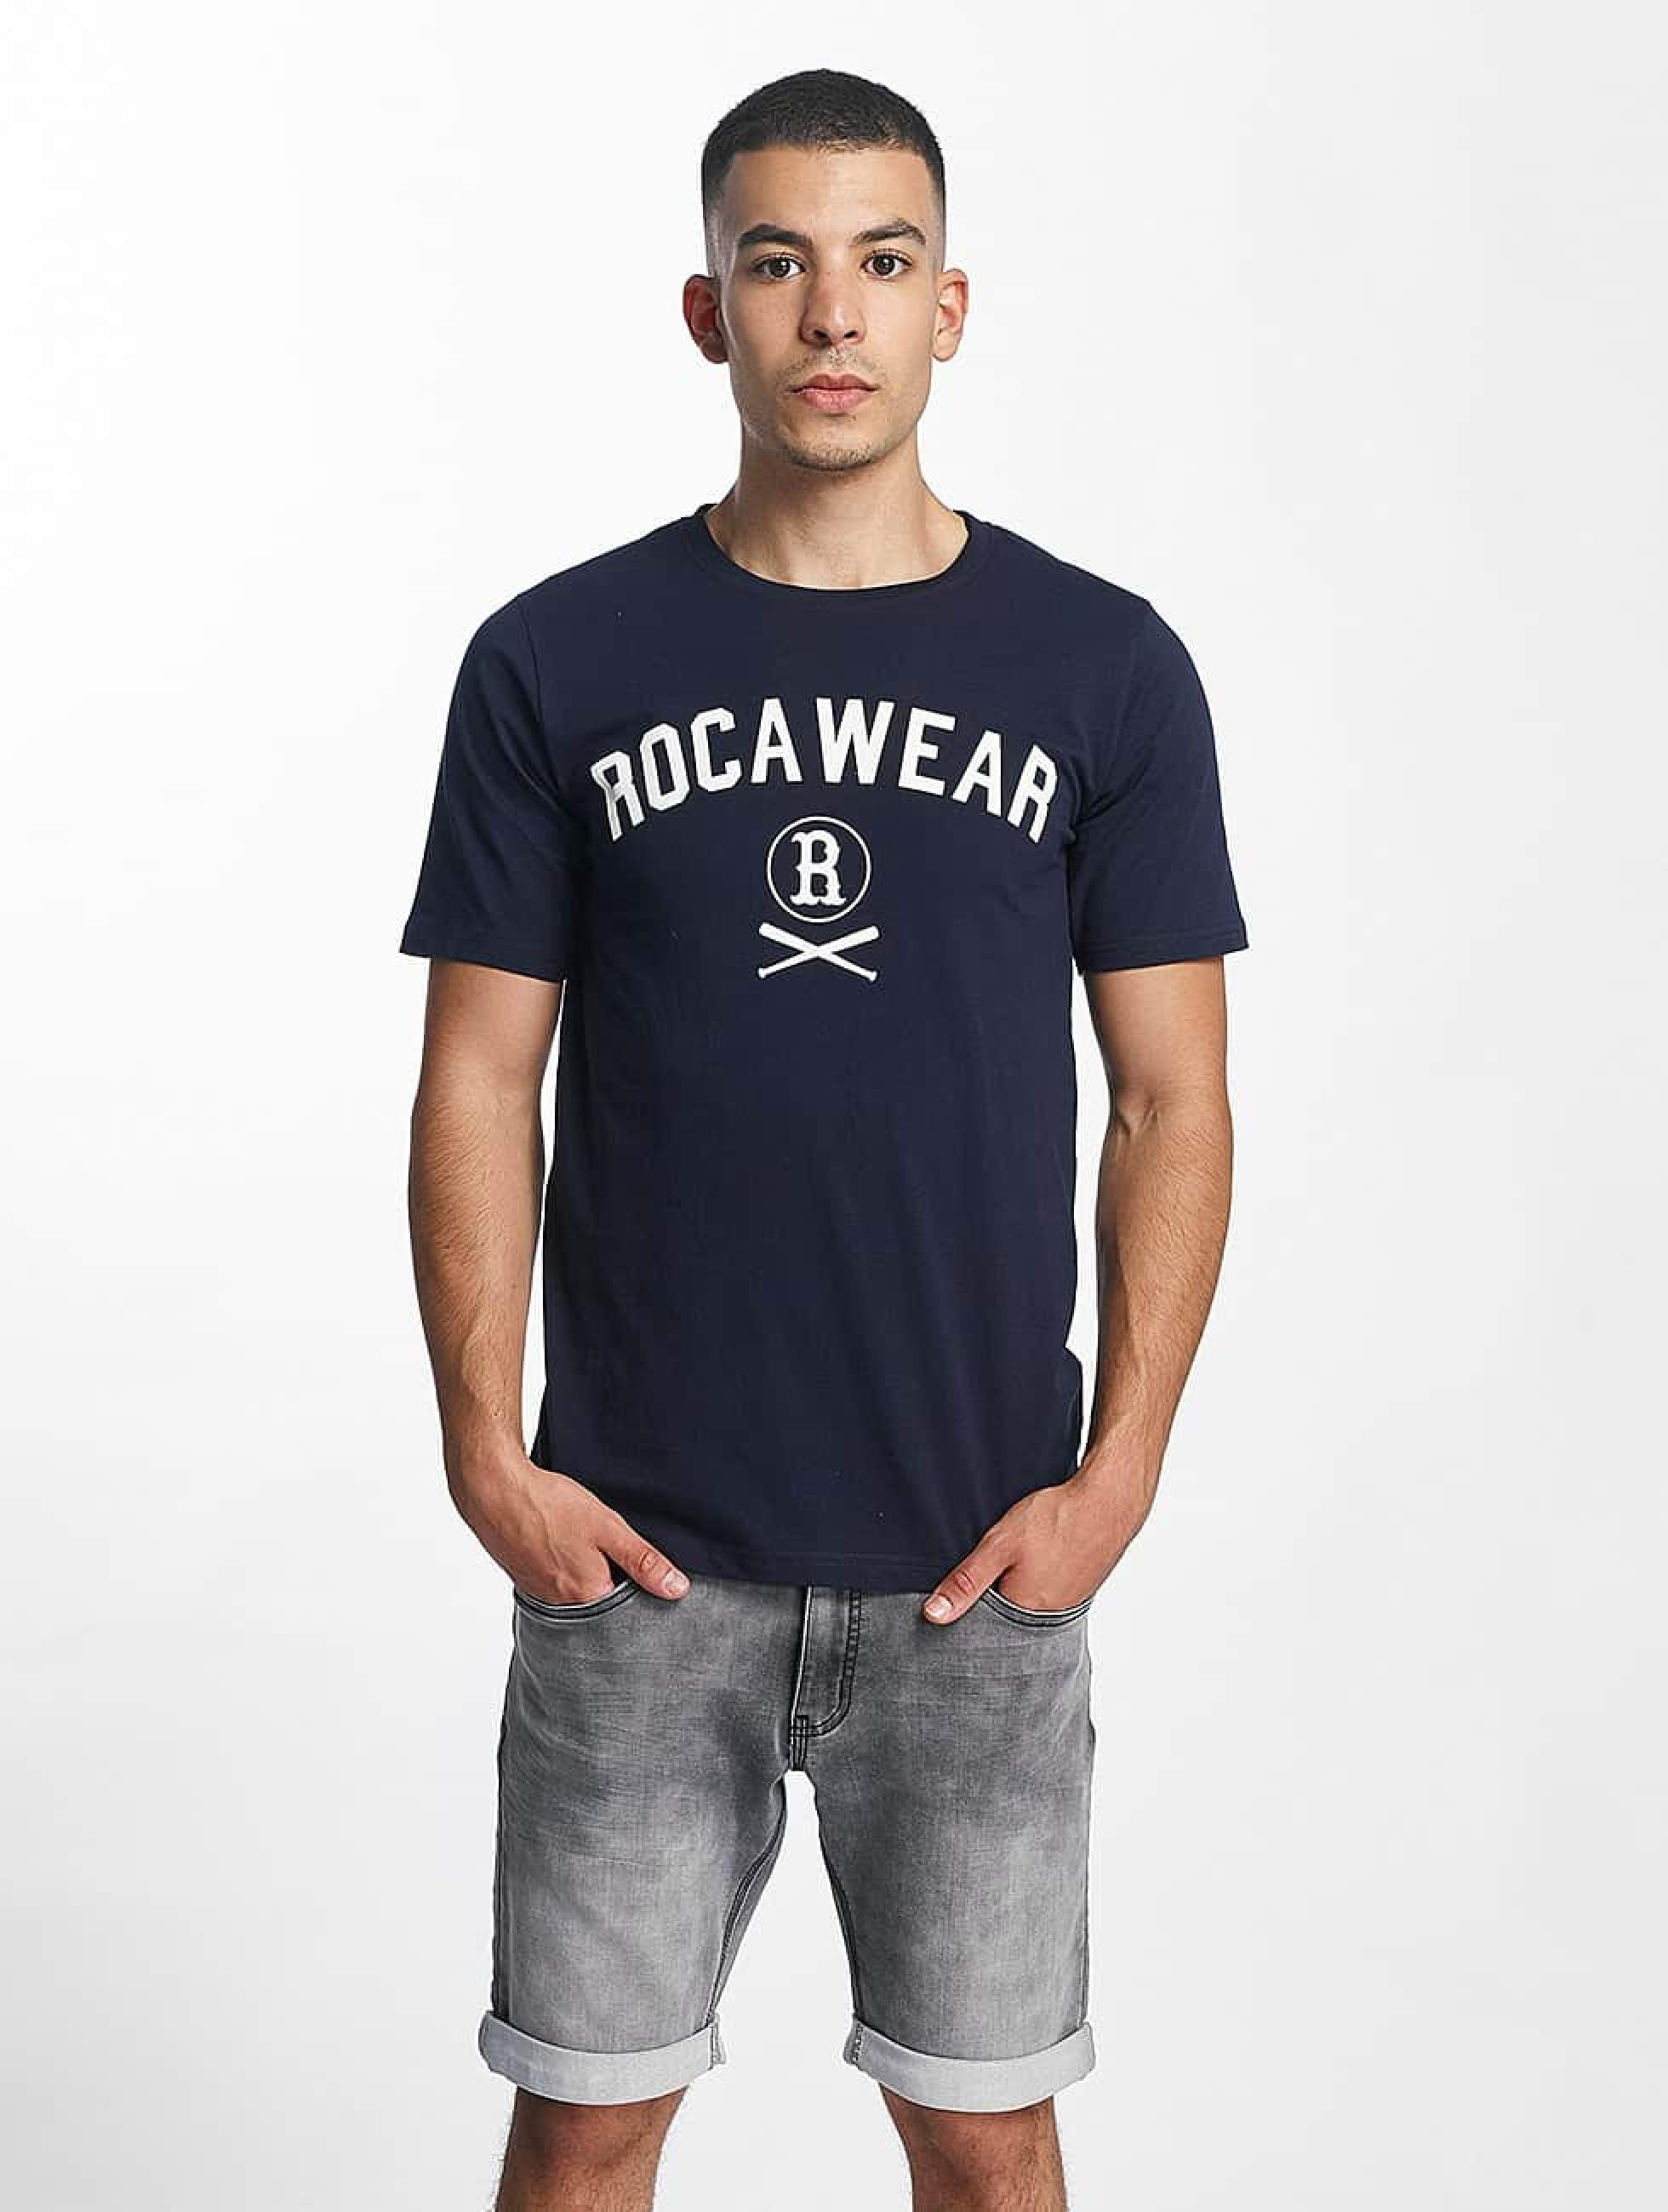 Rocawear / T-Shirt Logo in blue M